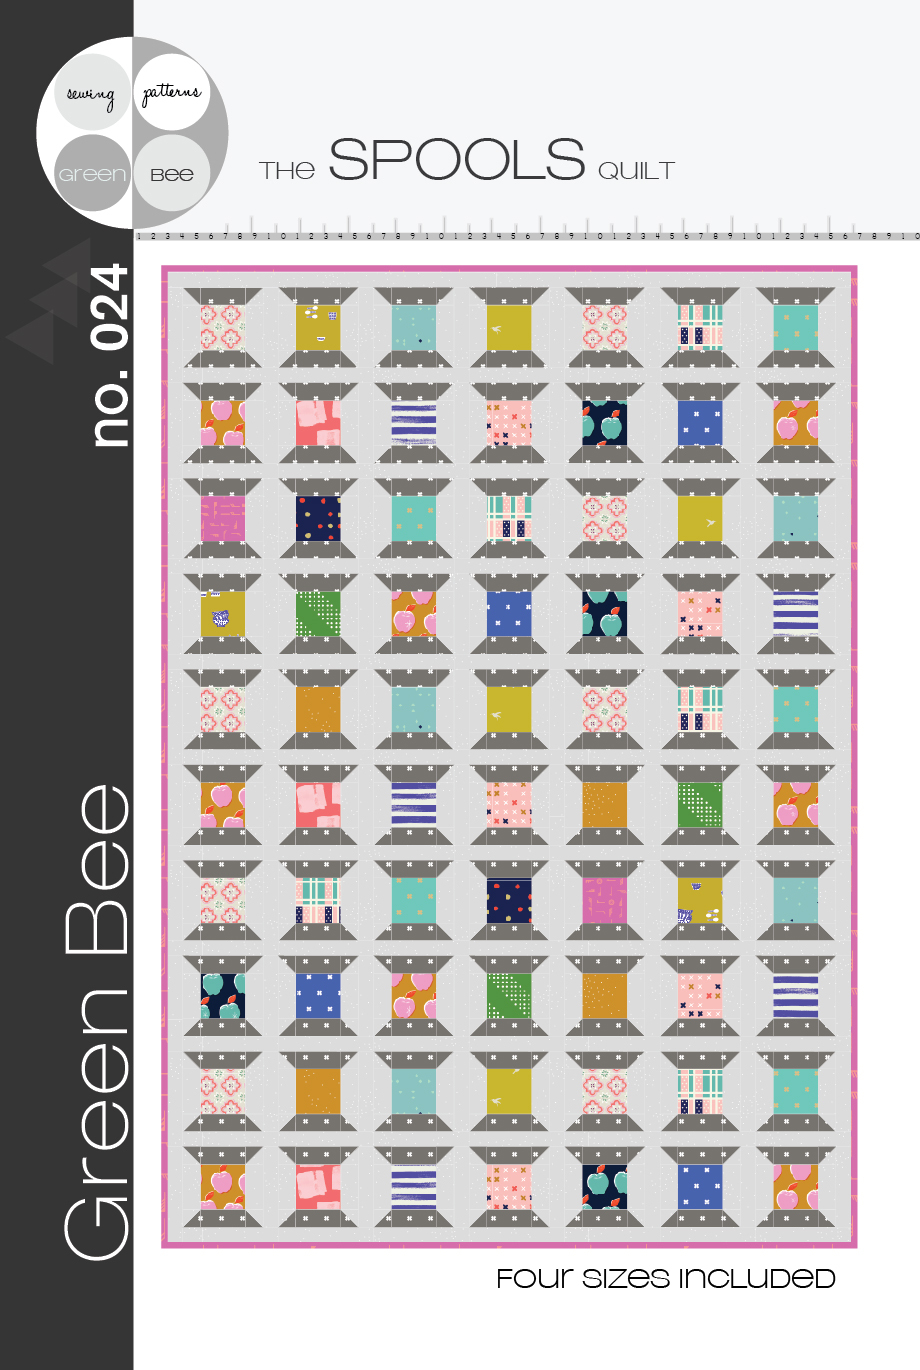 green bee design spools quilt sewing pattern